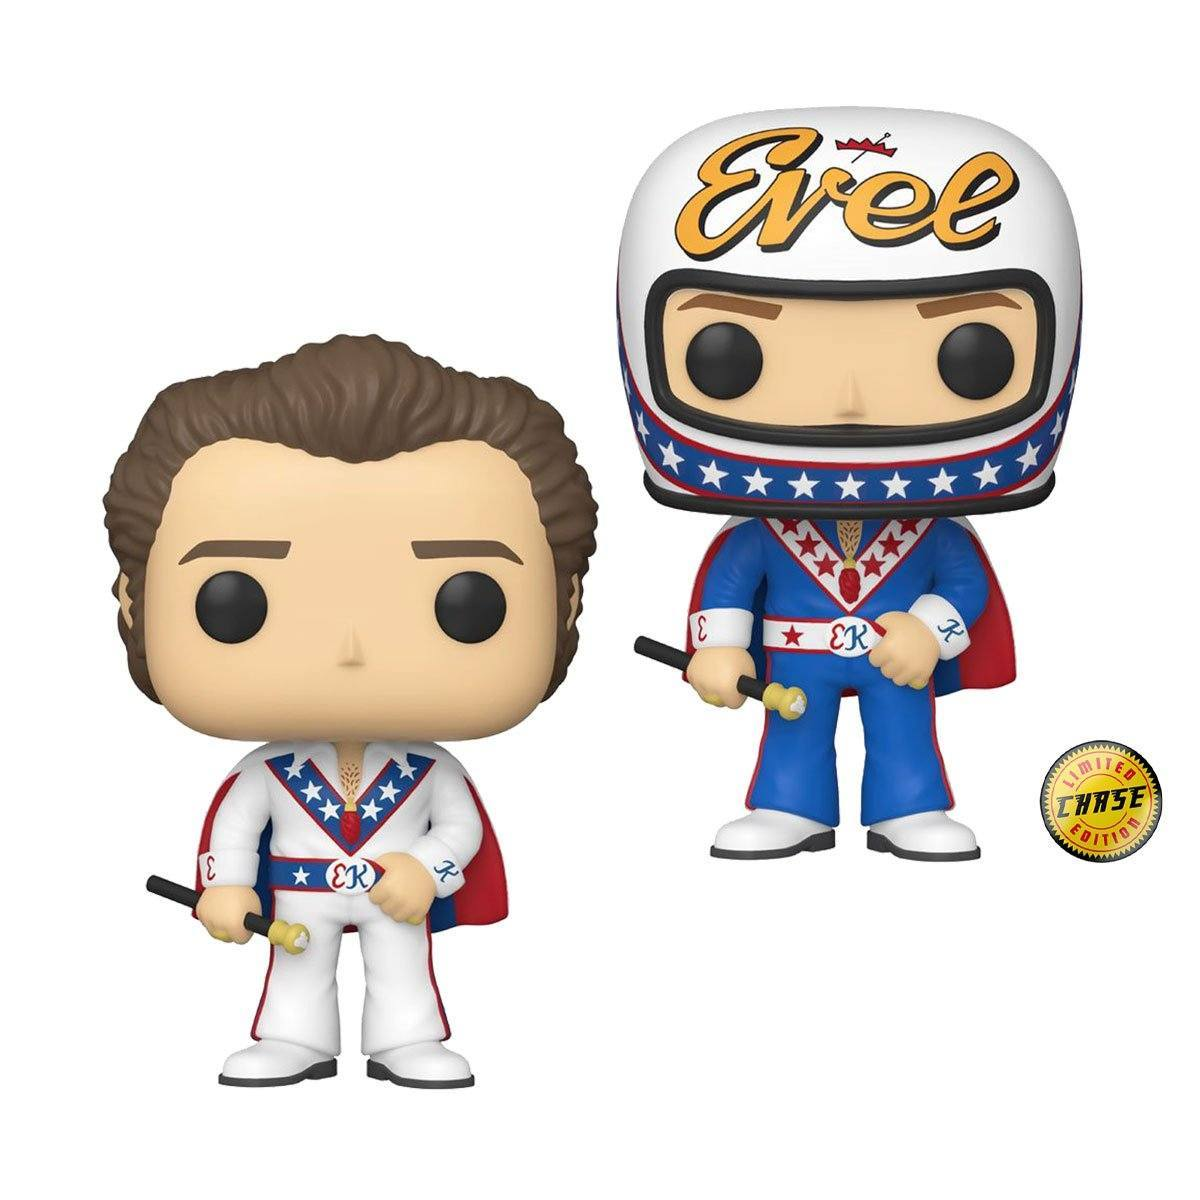 Evel Knievel with Cape Pop! Vinyl Figure #62